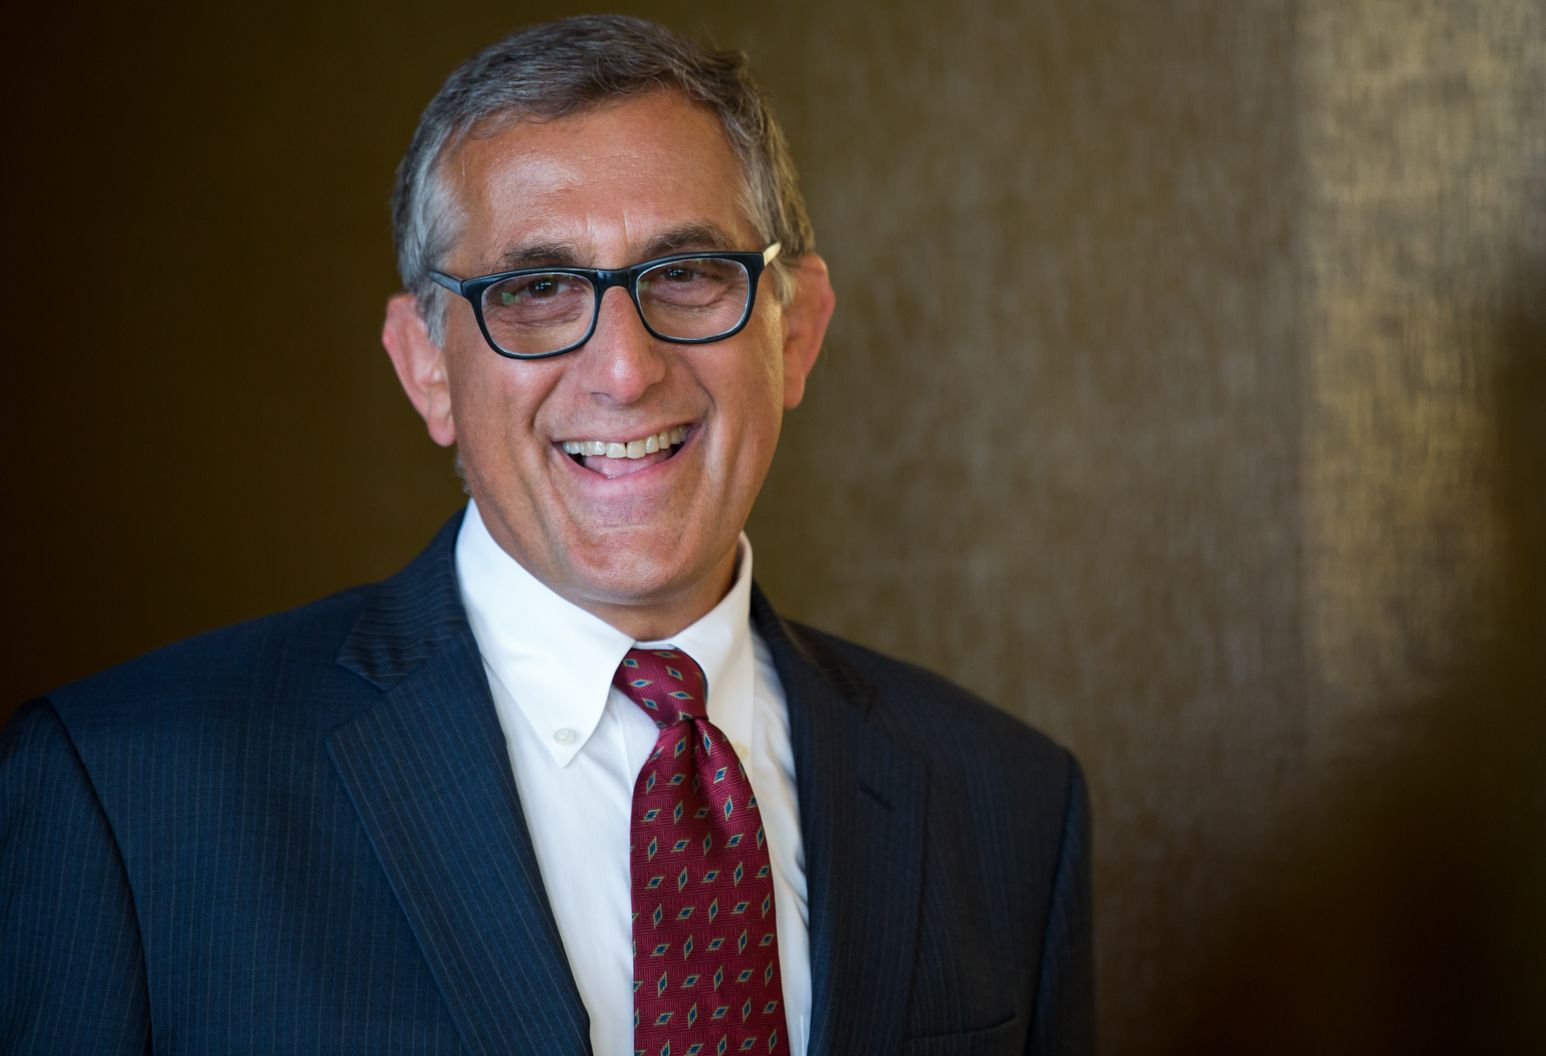 A man in a blue pin stripe suit, white collar button down shirt, and a red tie smiles at the camera. He has grey salt and pepper hair and wears black rimmed glasses.